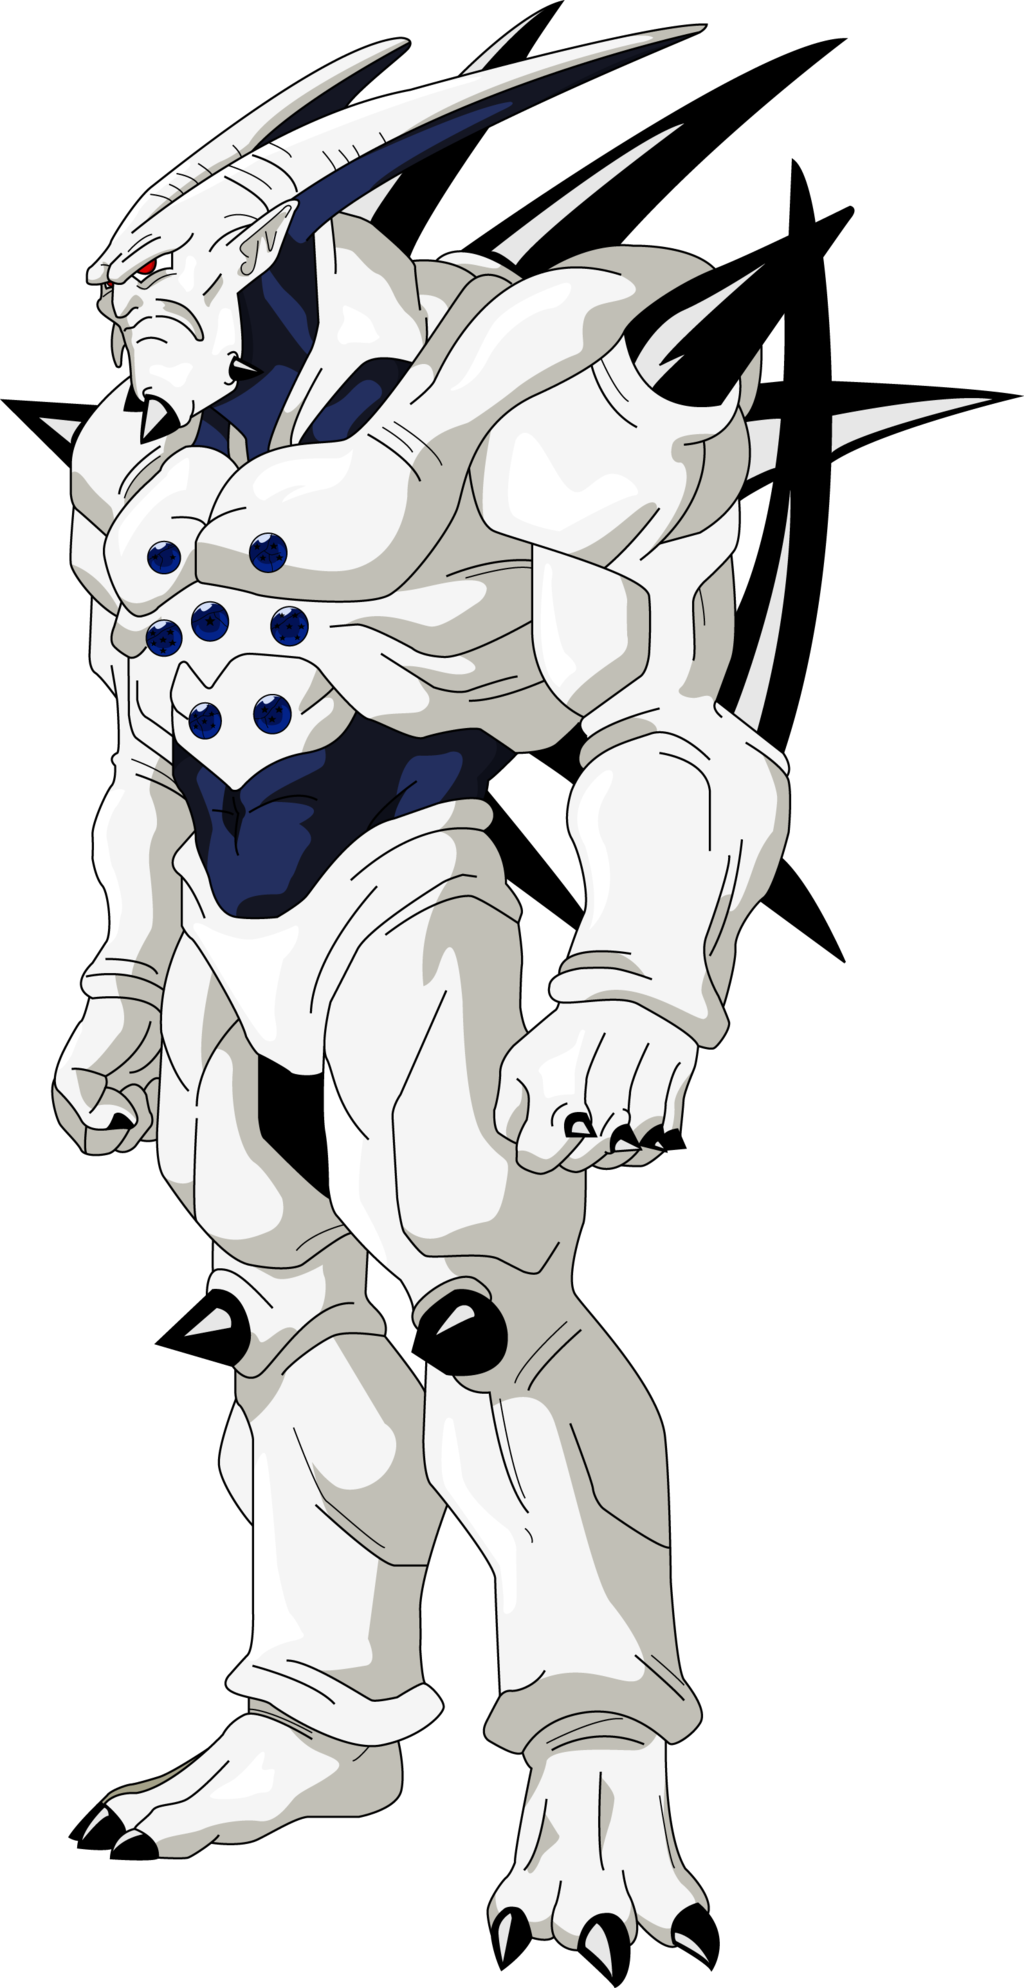 DARKERVADE1 BLOGSPOT: top 3 dragon ball gt villain